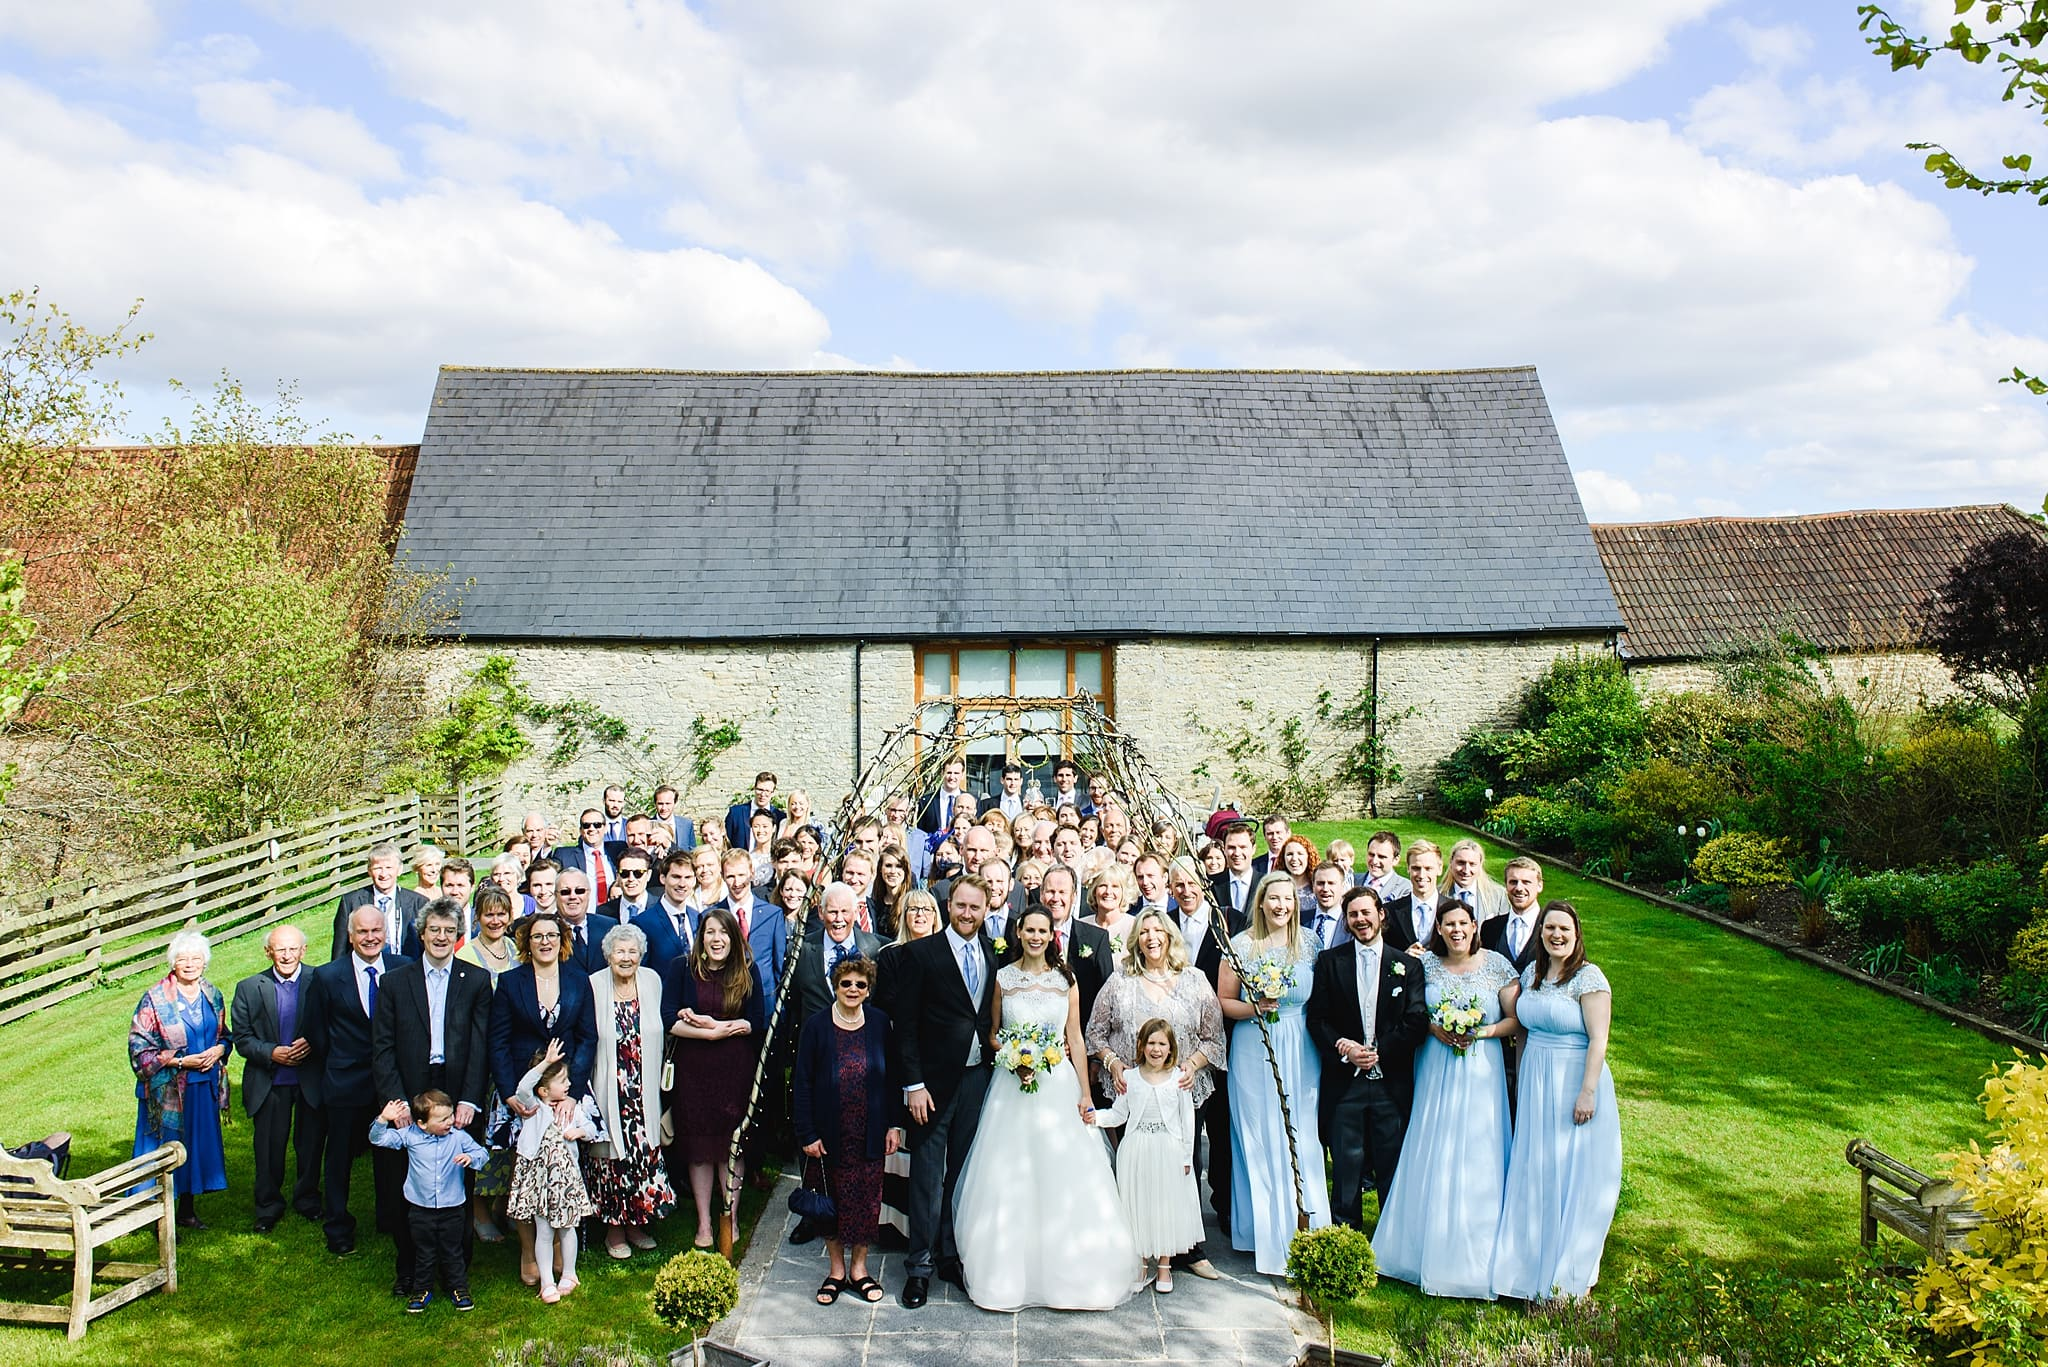 Group photo of a wedding party at Wick Farm in Bath